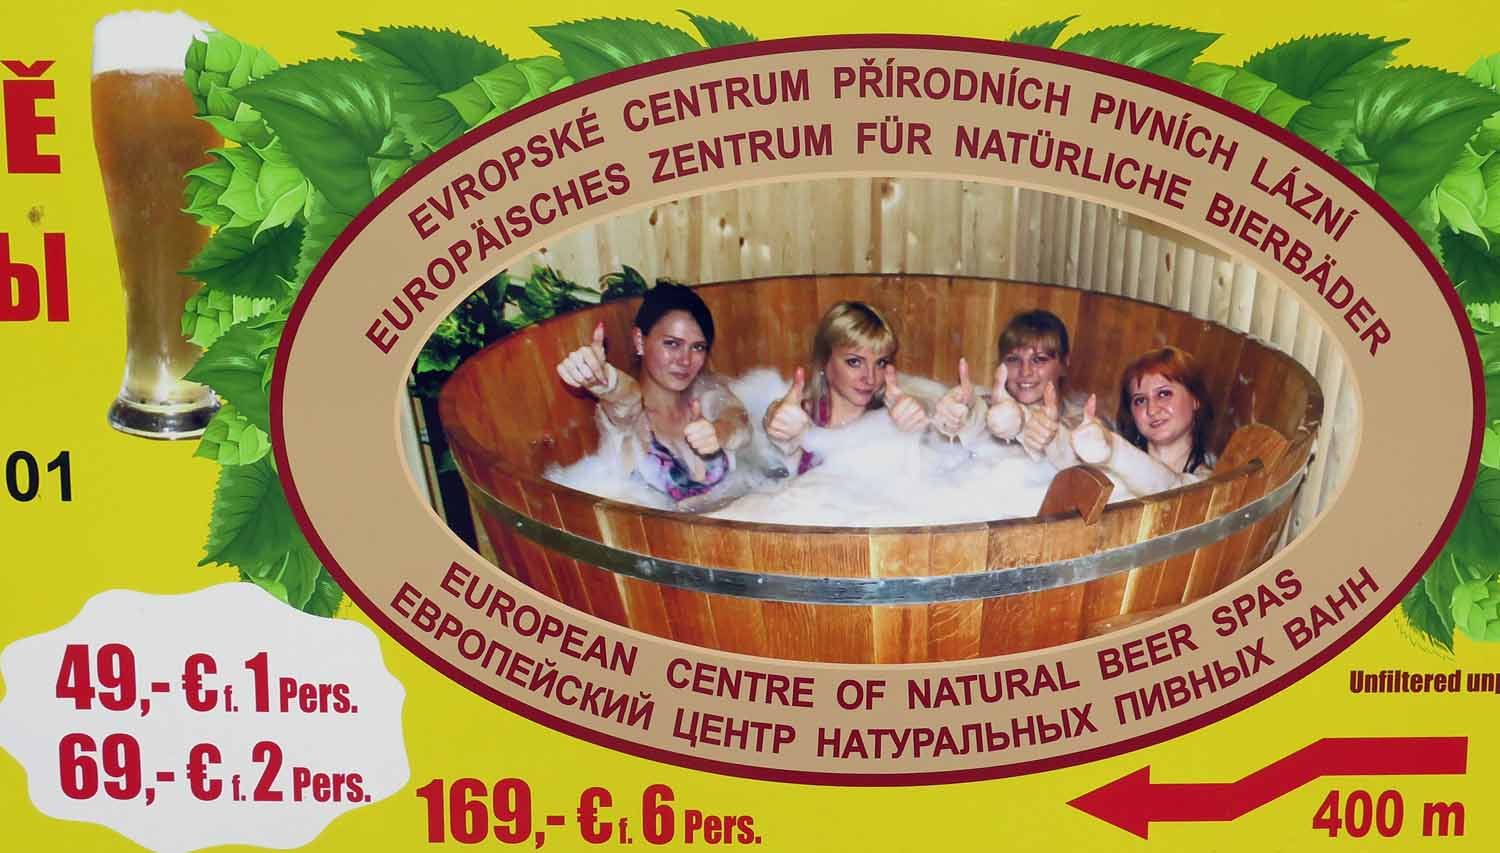 Czech-Republic-Karlovy-Vary-Beer-Spa